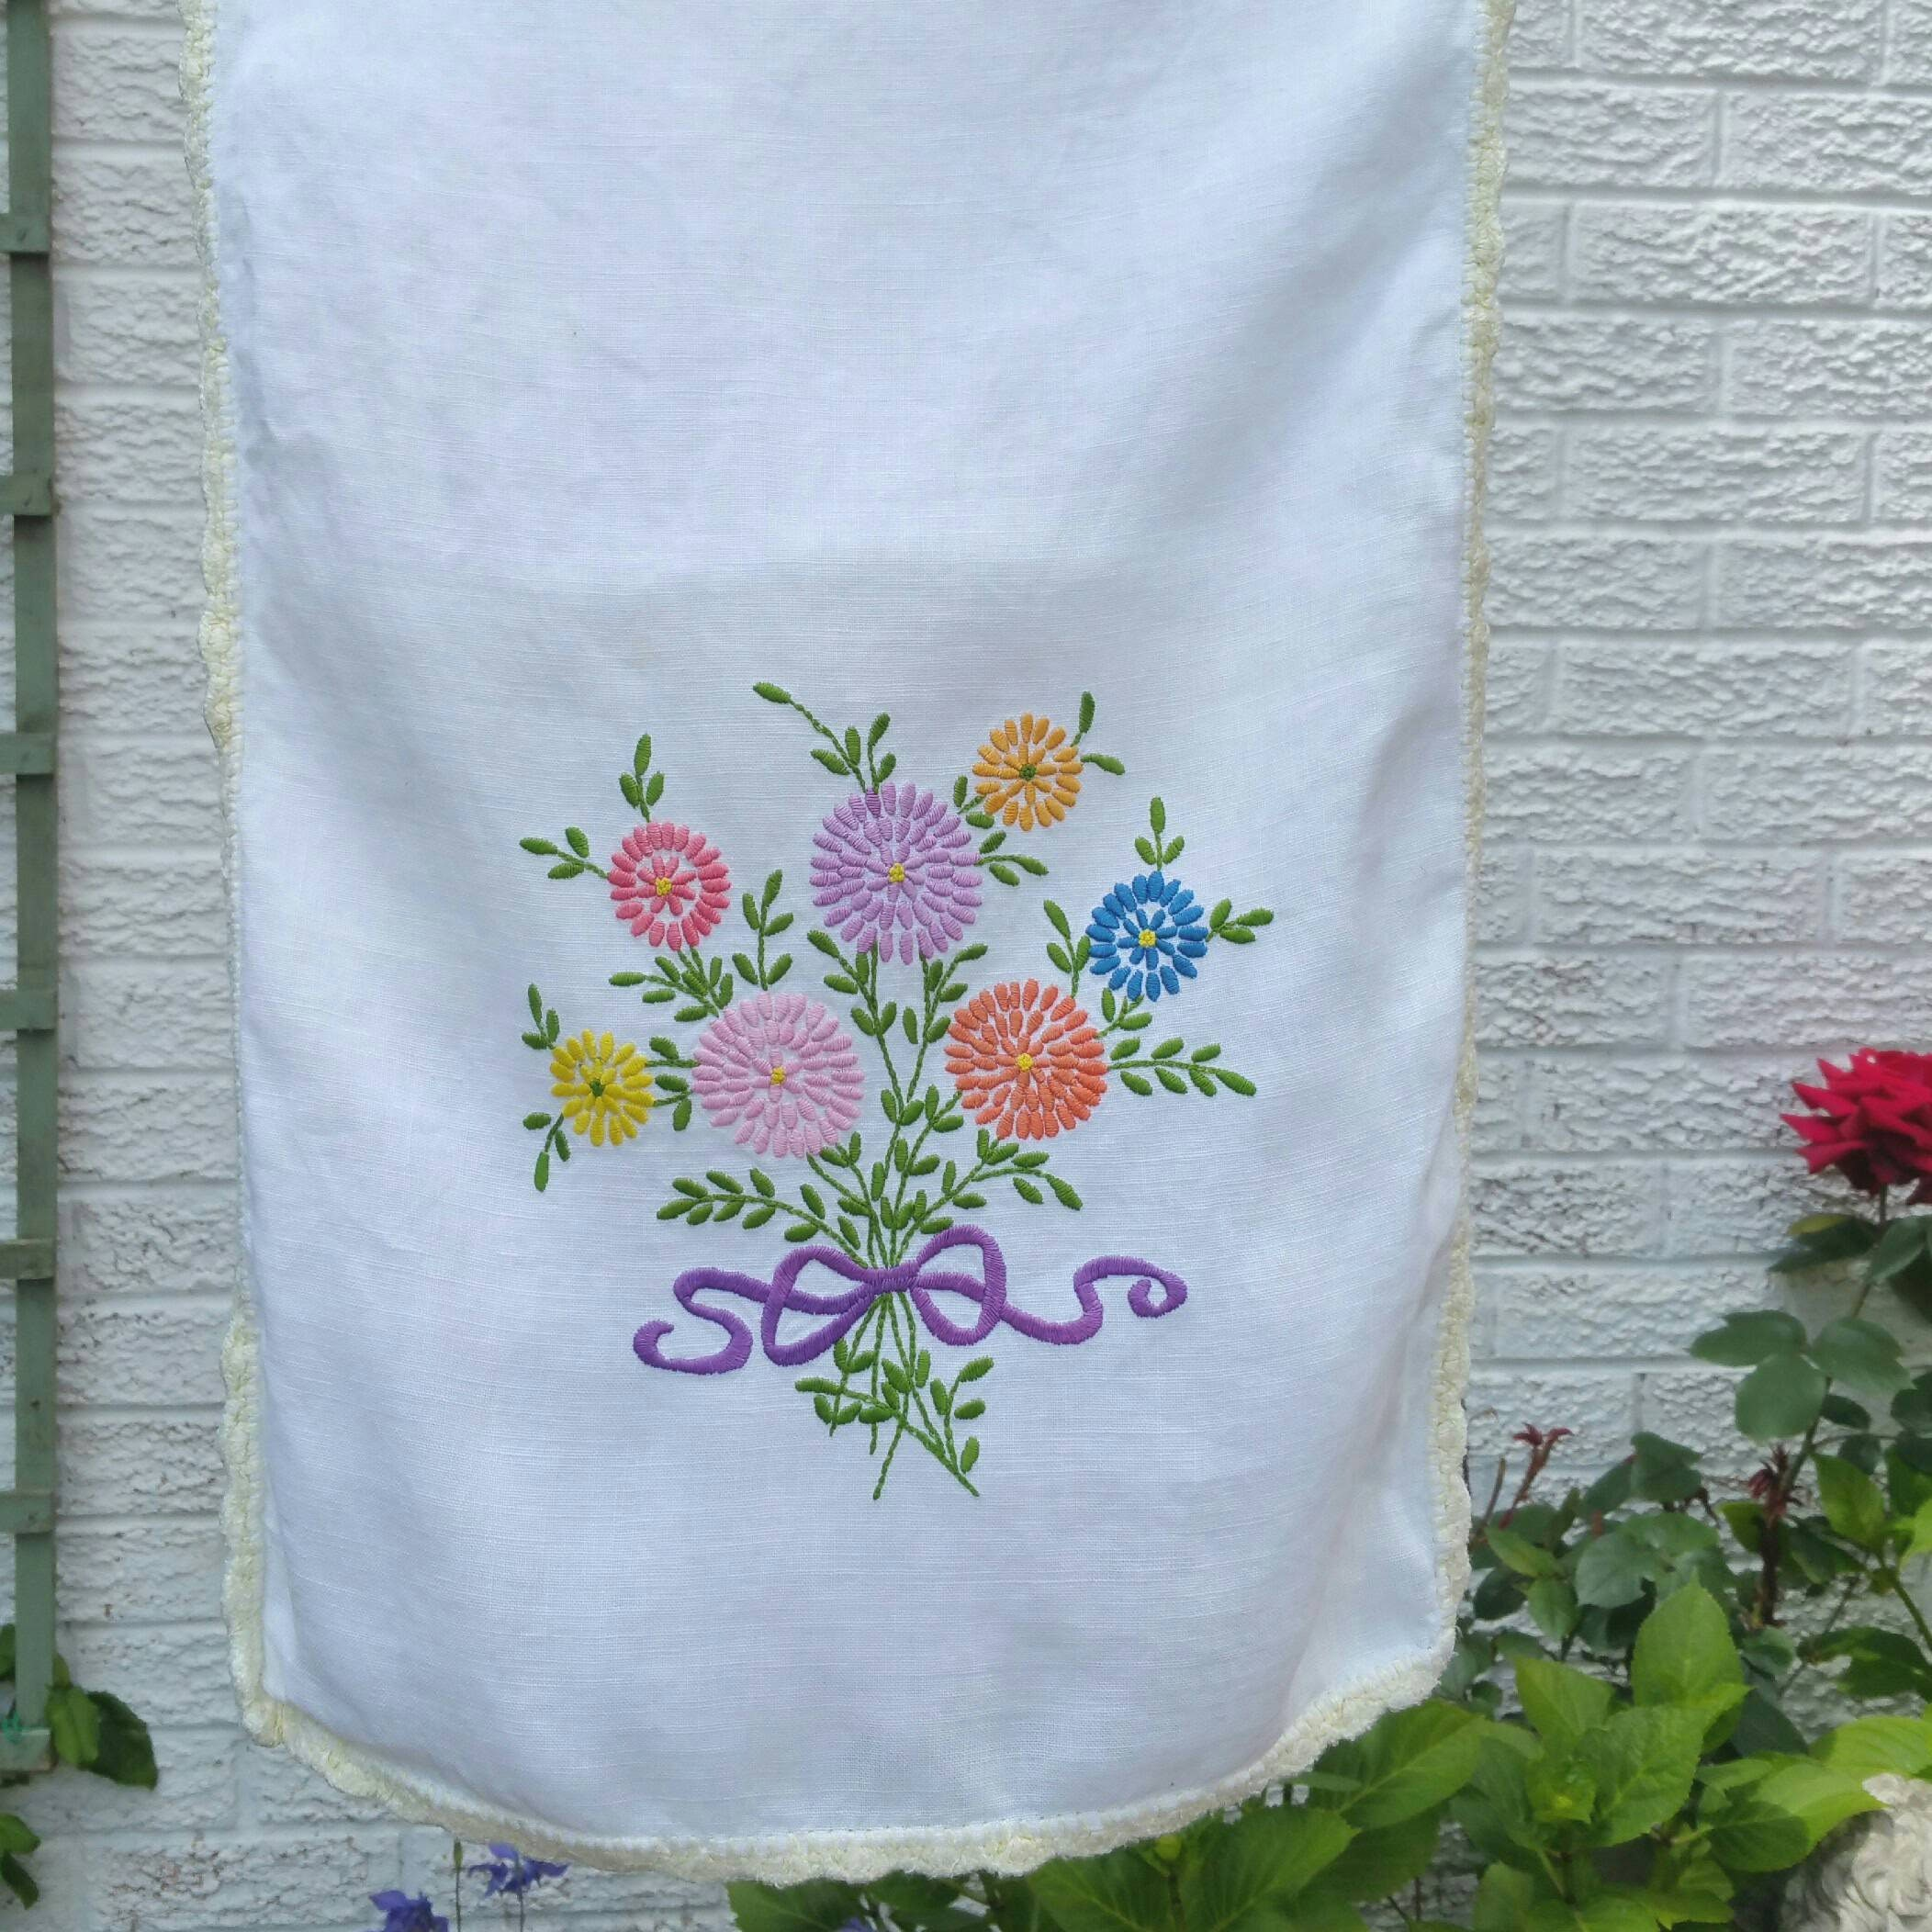 Vintage table runner tray cloth place mat chair cover.